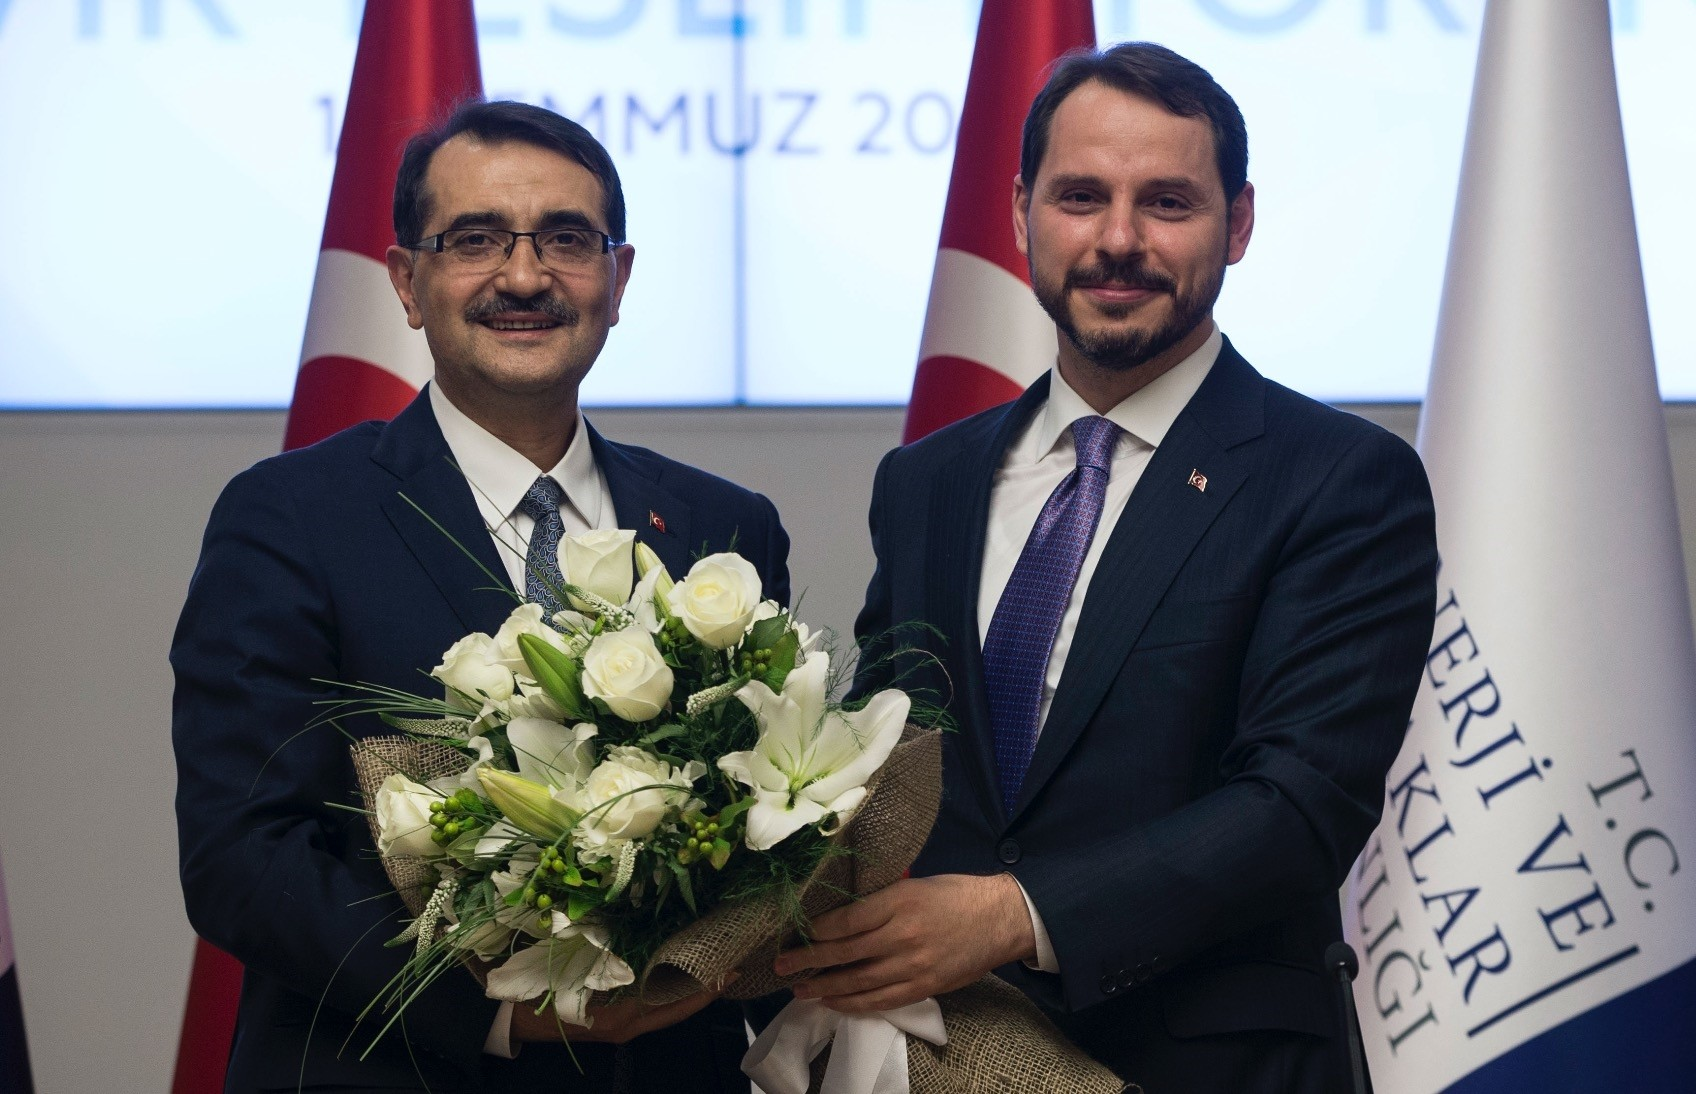 Energy and Natural Resources Minister Fatih Du00f6nmez took over duties from his predecessor and the new Treasury and Finance Minister Berat Albayrak on July 10.